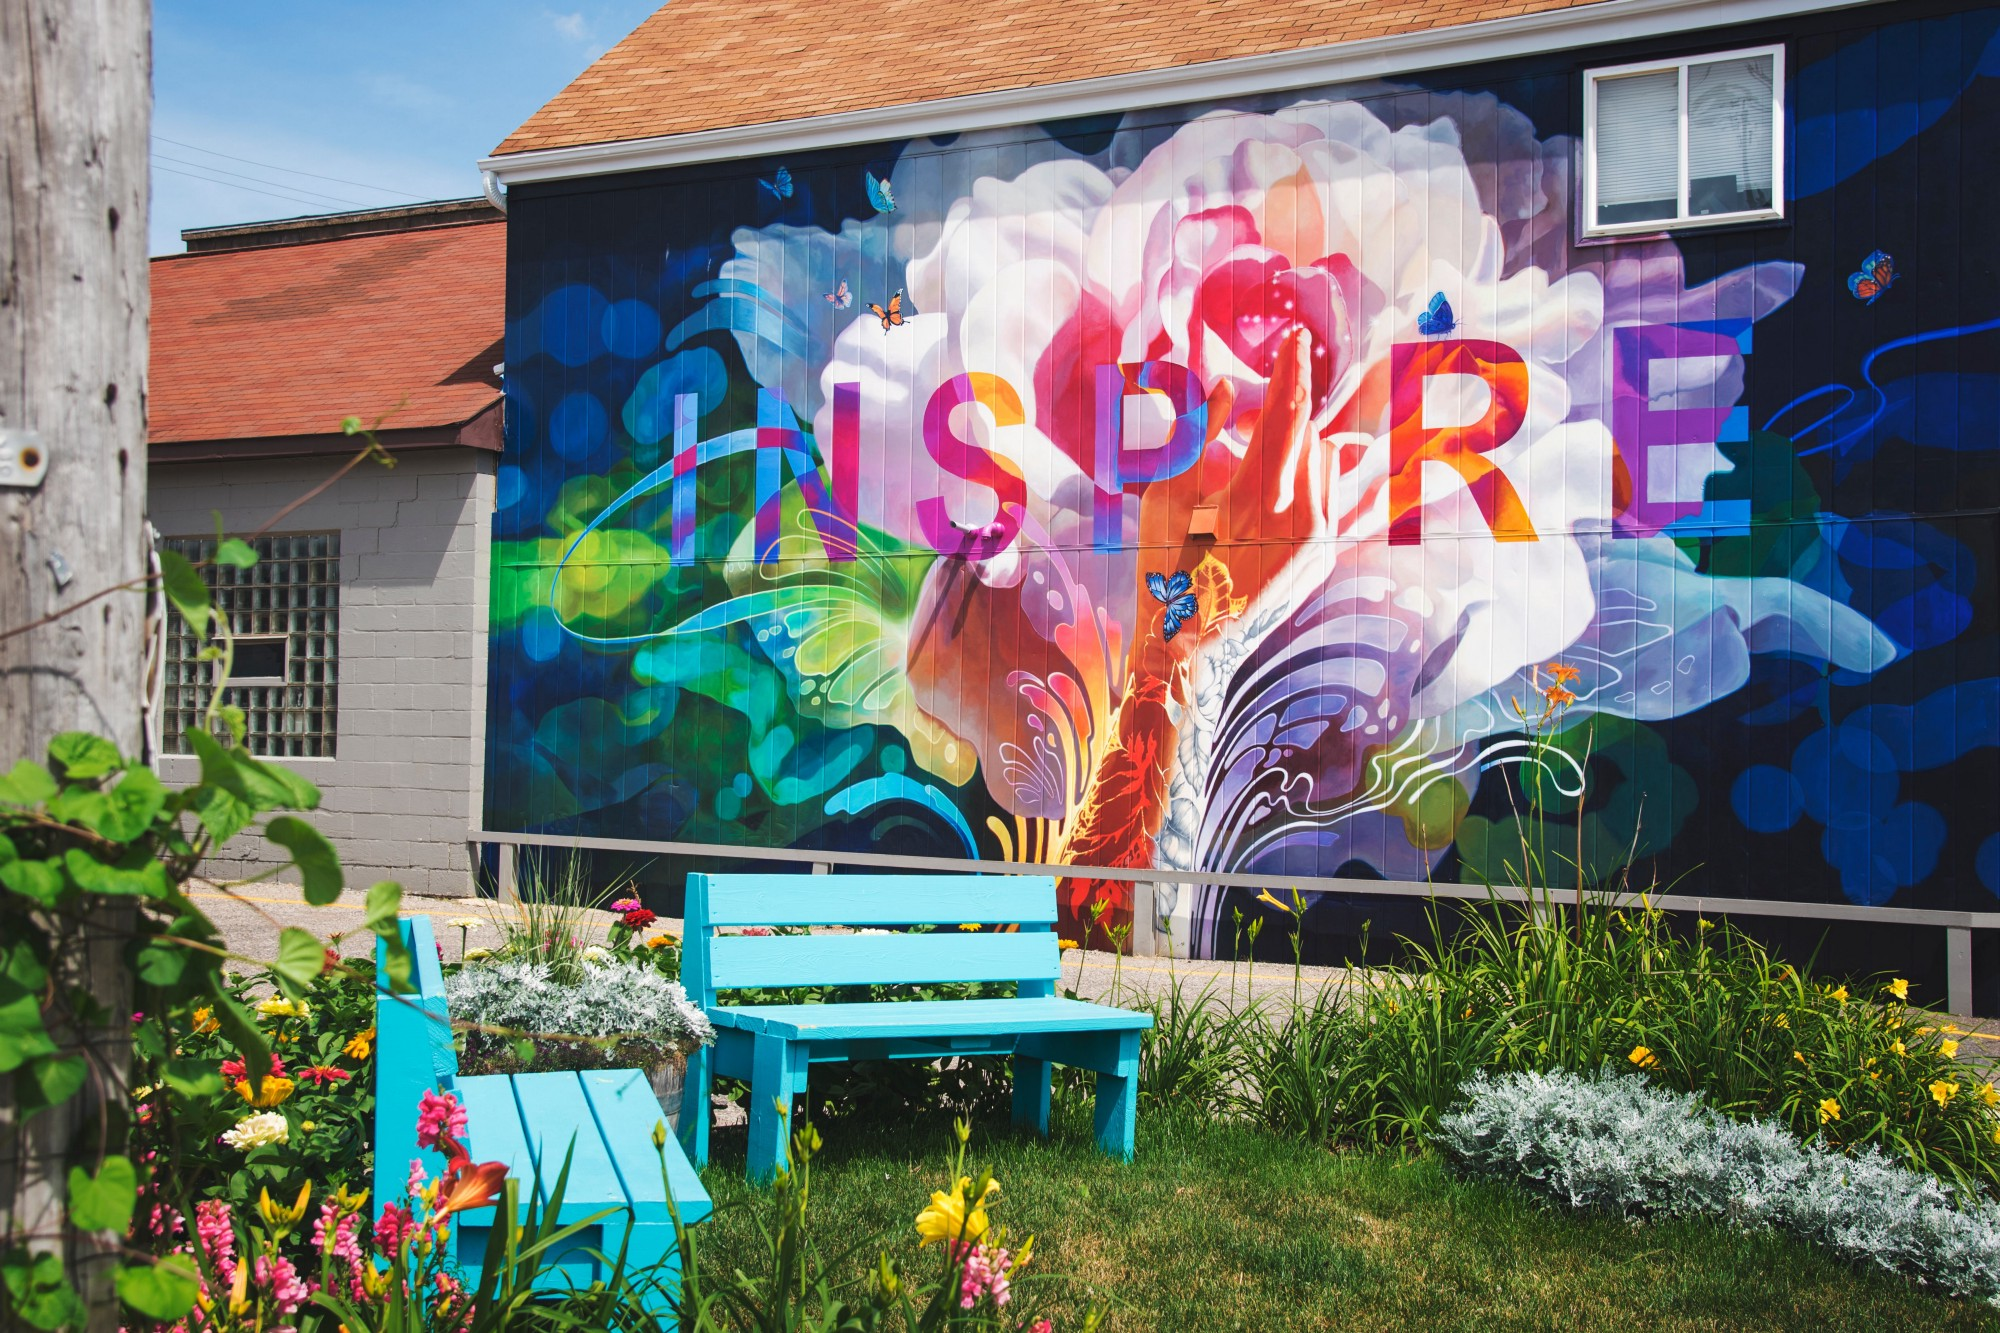 blue wooden benches near wall with graffiti, the word inspire on the wall